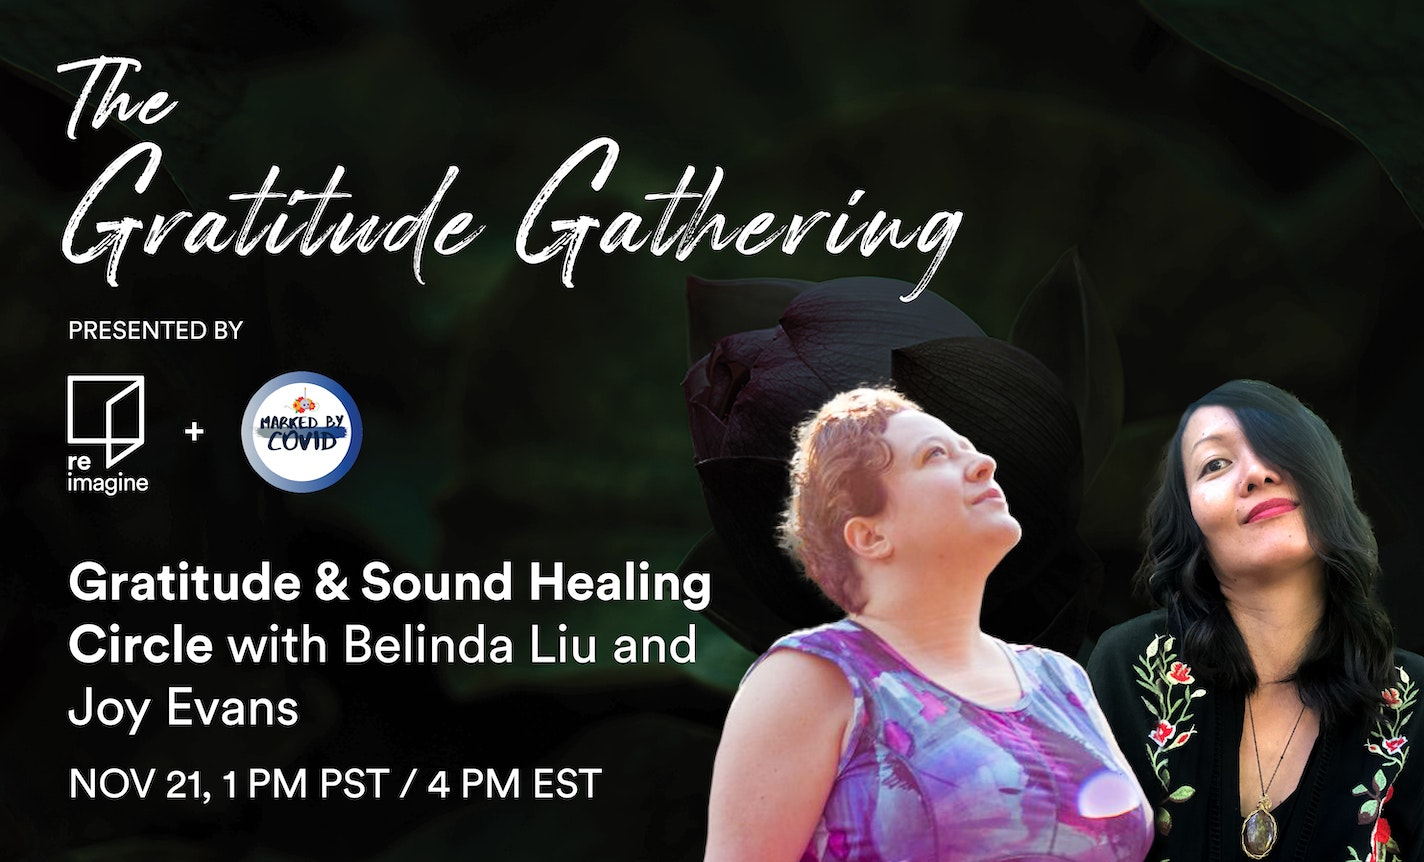 The Gratitude Gathering: Gratitude & Sound Healing Circle